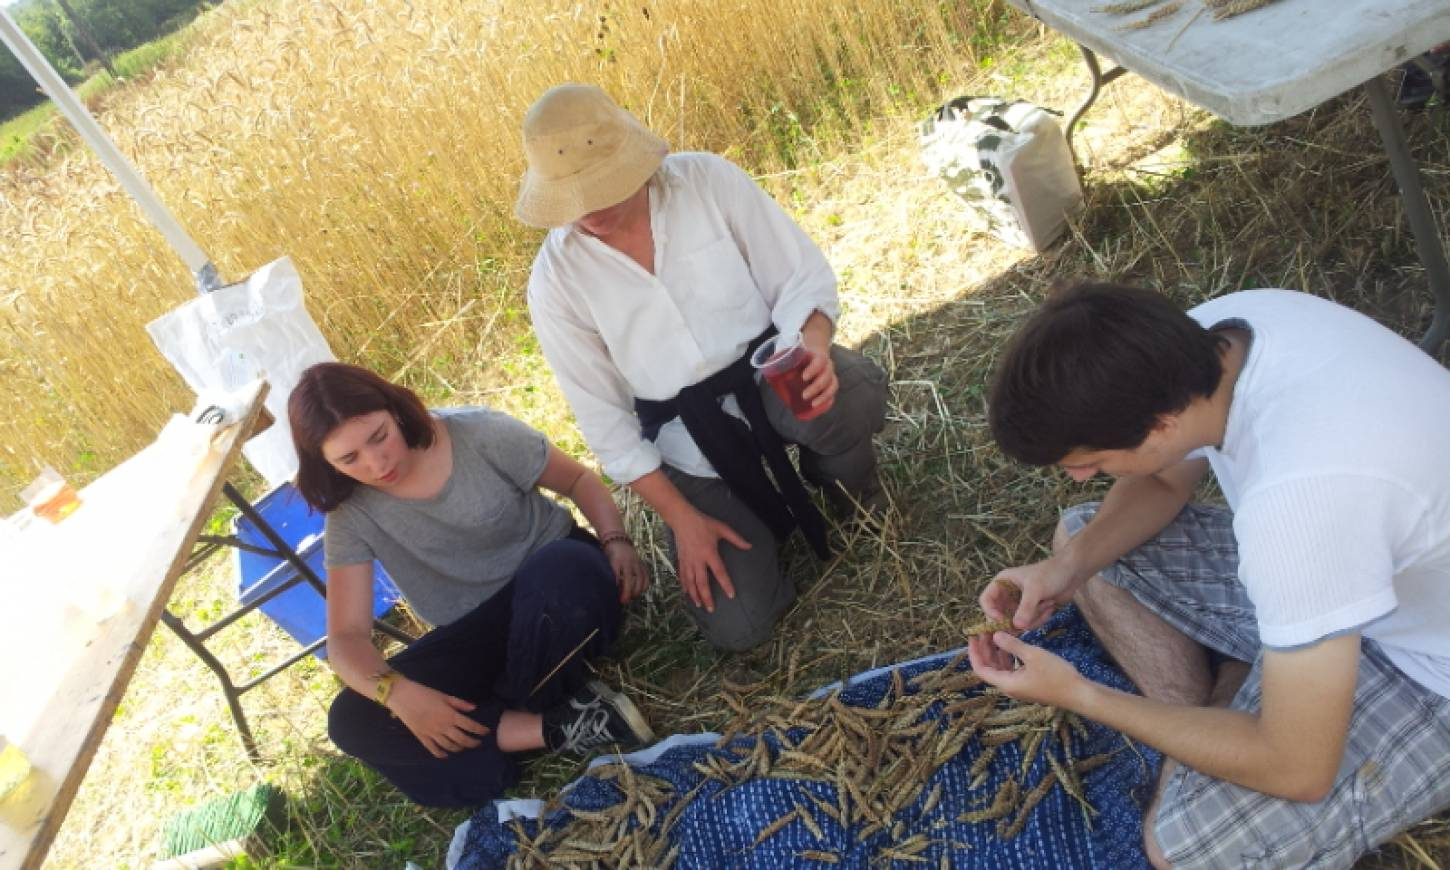 WoWo manual harvest pic: Ann Bodkin - 12:30pm&nbsp;8<sup>th</sup>&nbsp;Aug.&nbsp;'15